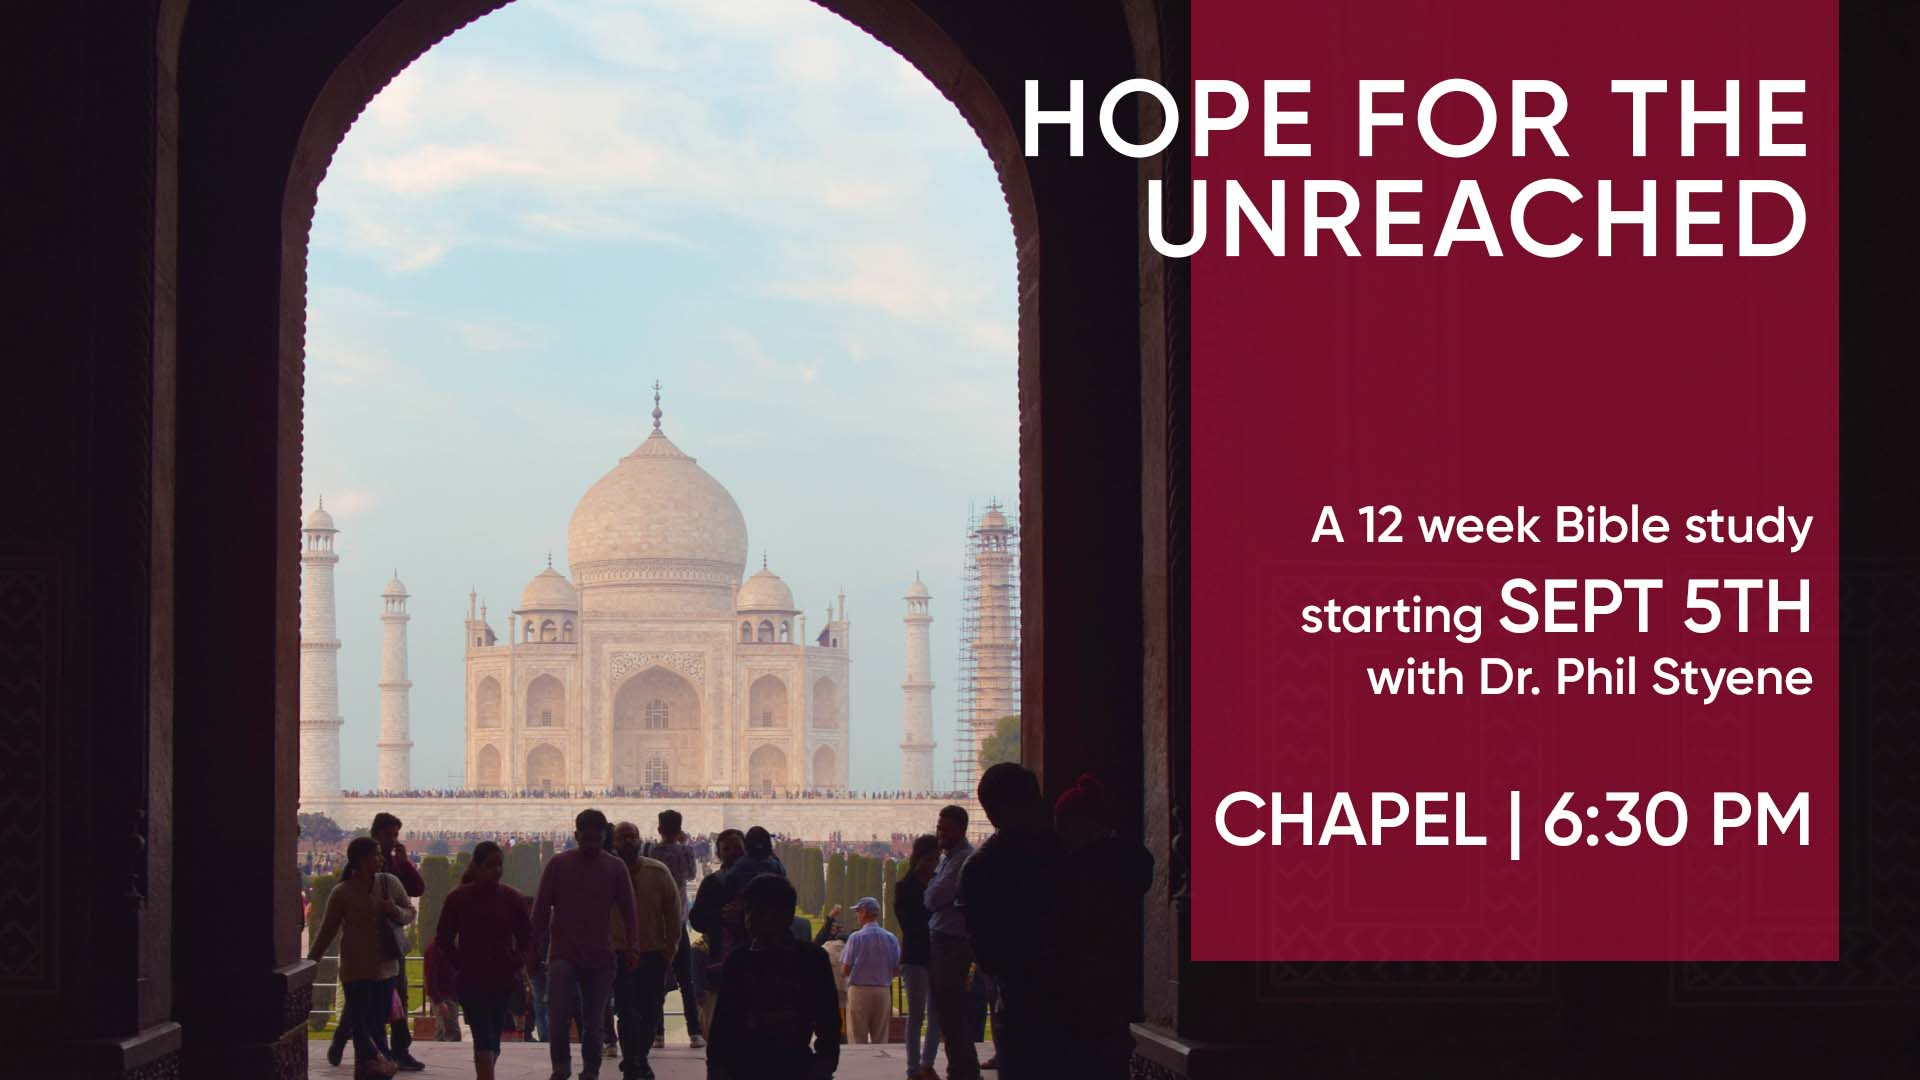 Hope for the Unreached Bible Study